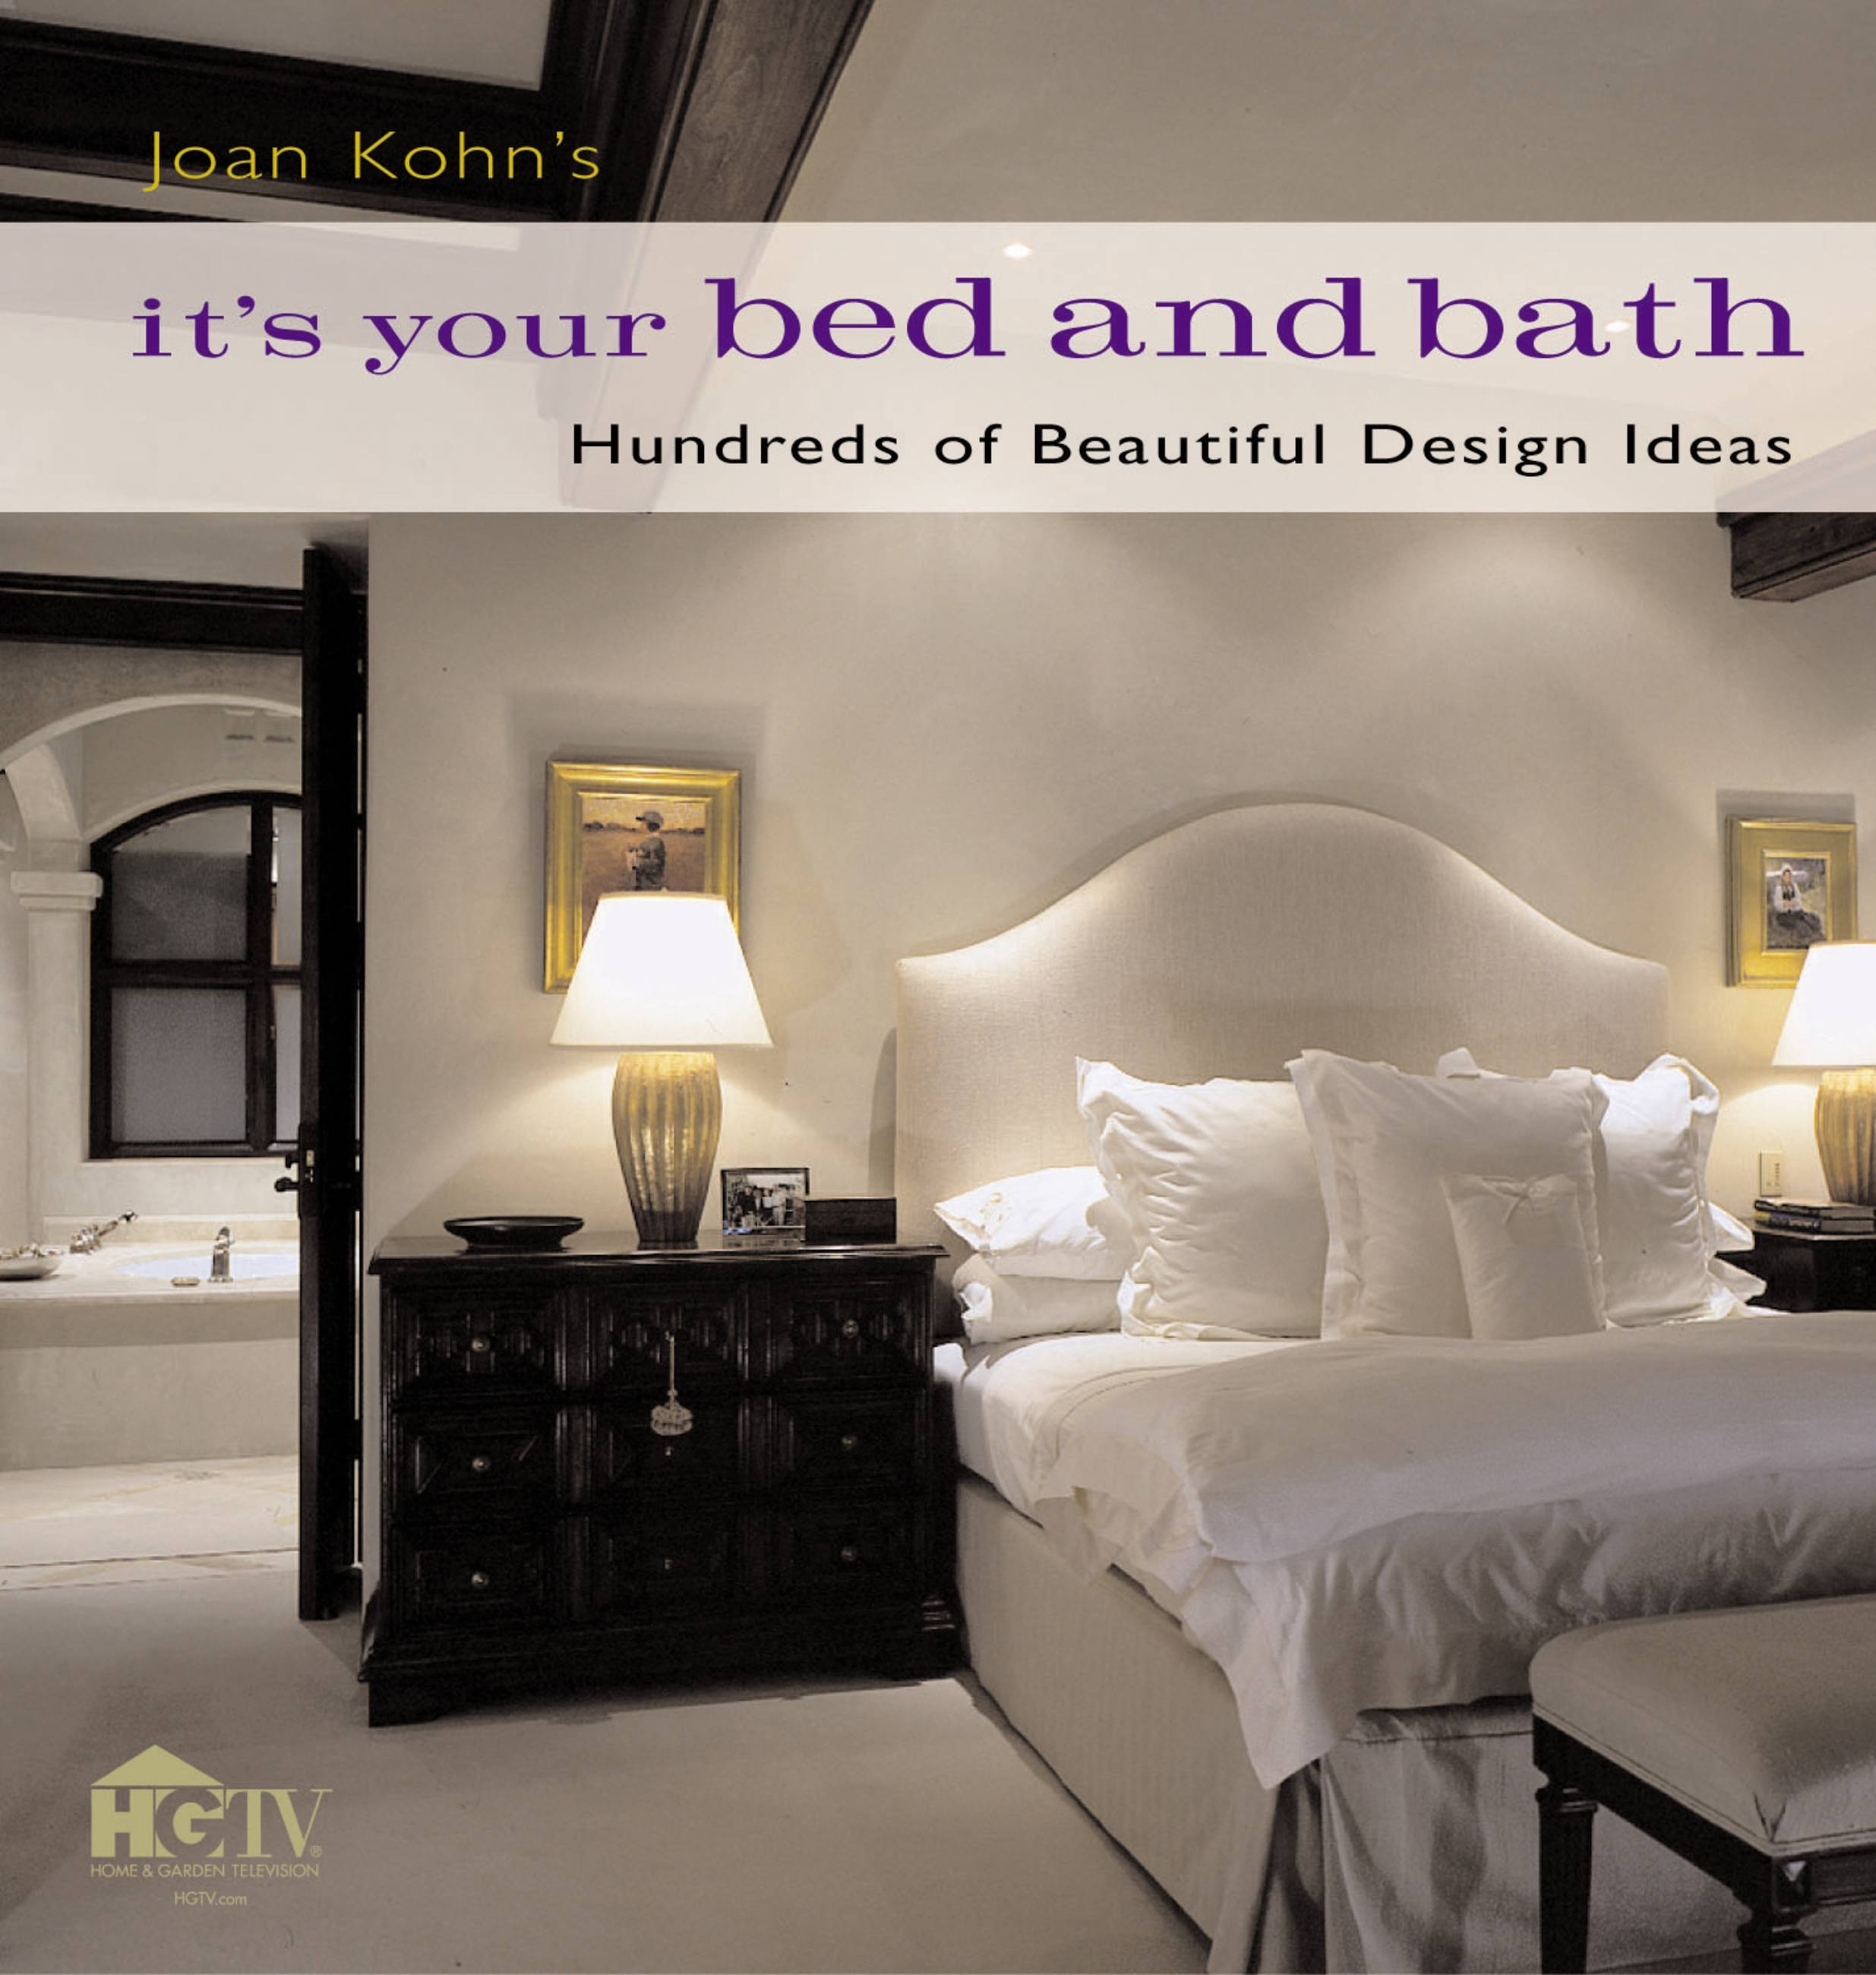 Joan Kohn's It's Your Bed and Bath